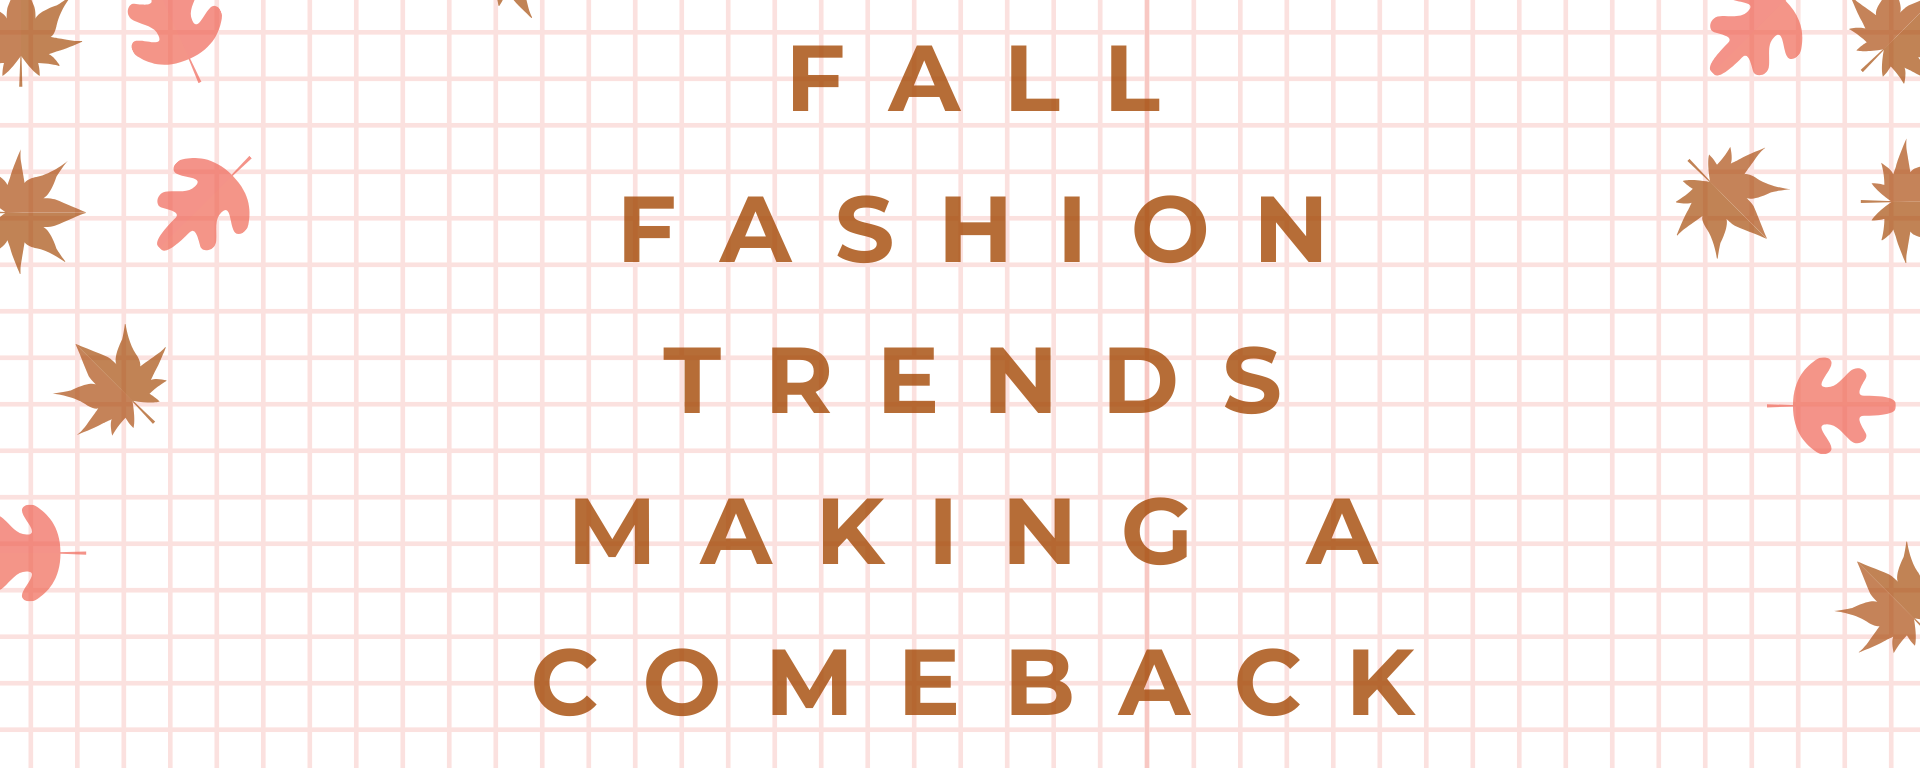 """fall fashion trends making a comeback"" text on a grid background with brown and pink leaves."